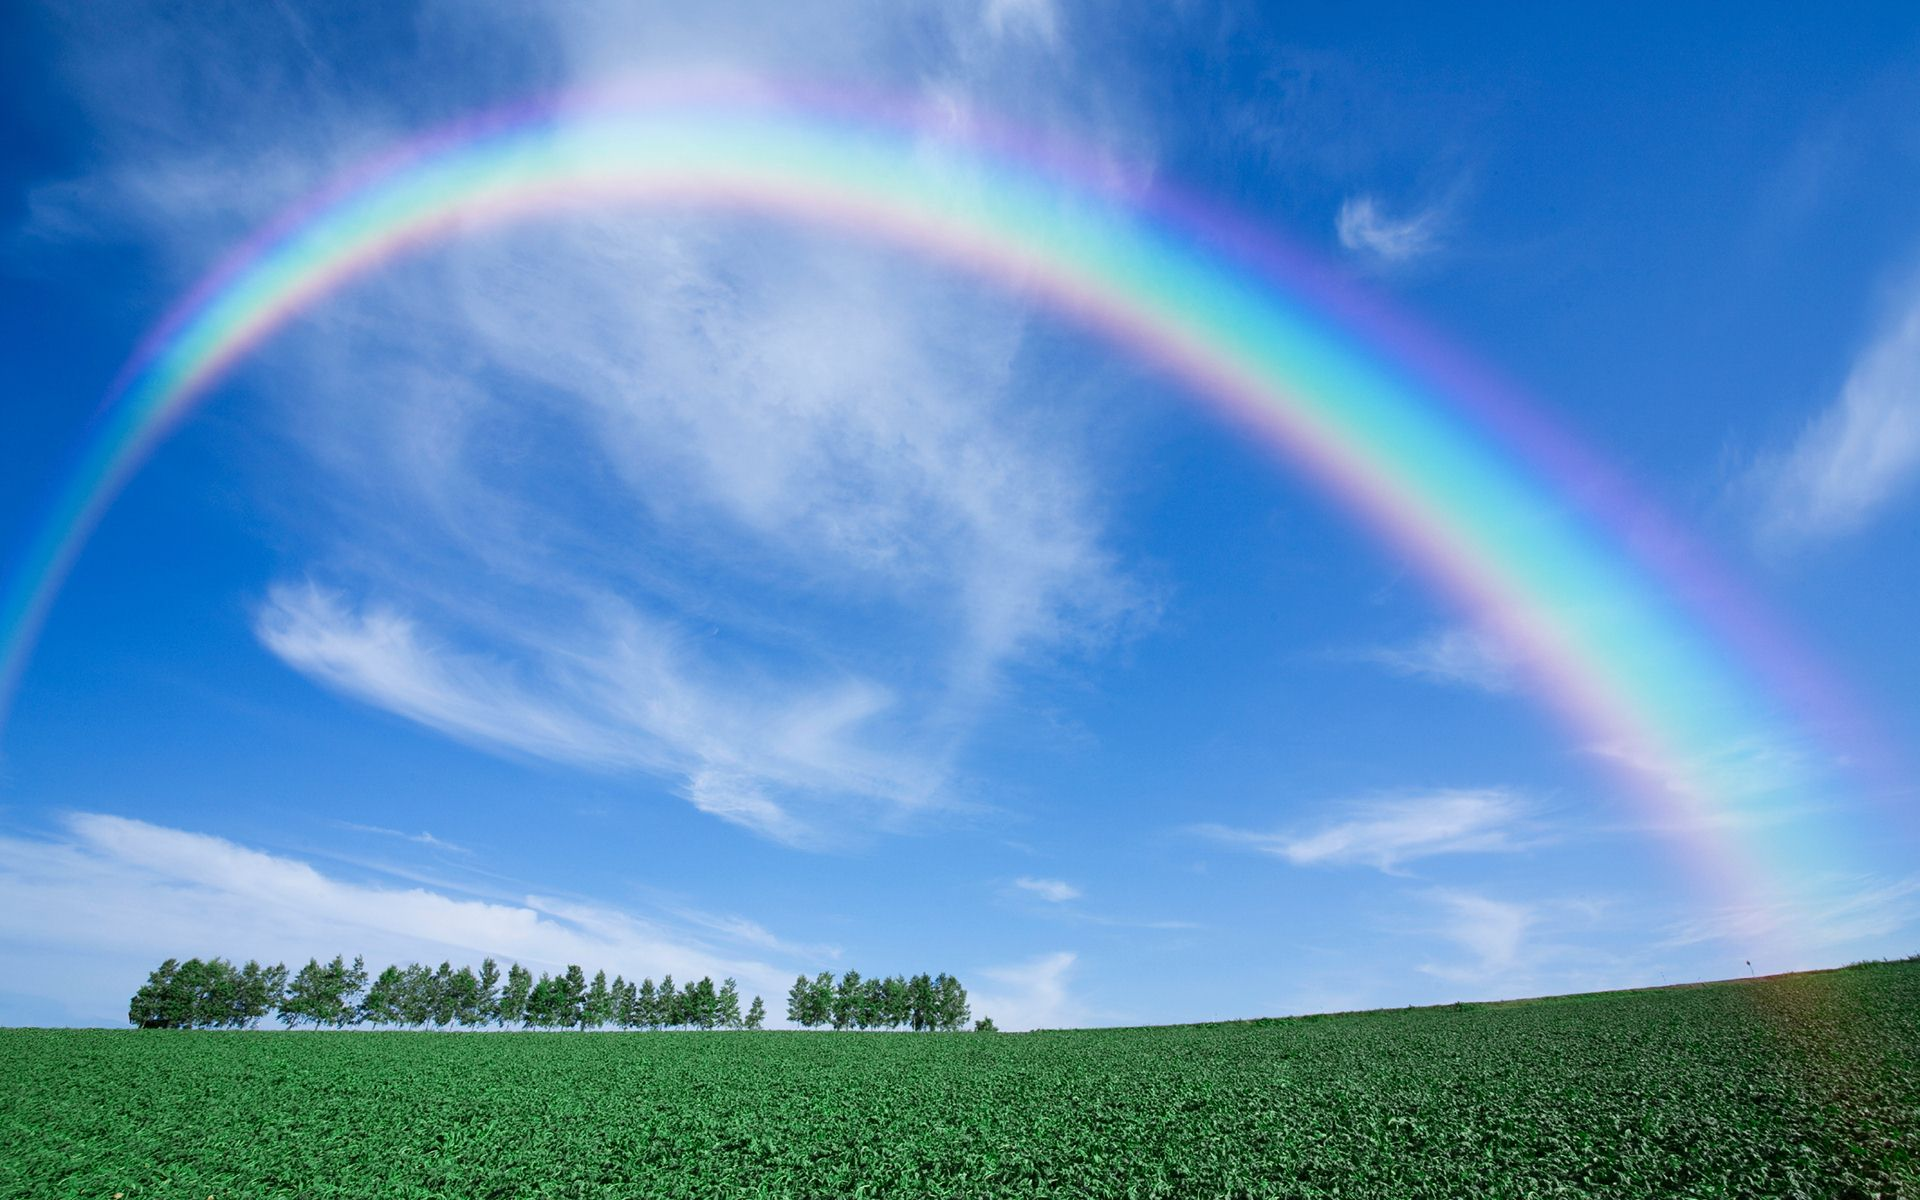 Rainbow Wallpapers Free Download Hd Latest Amazing Beautiful